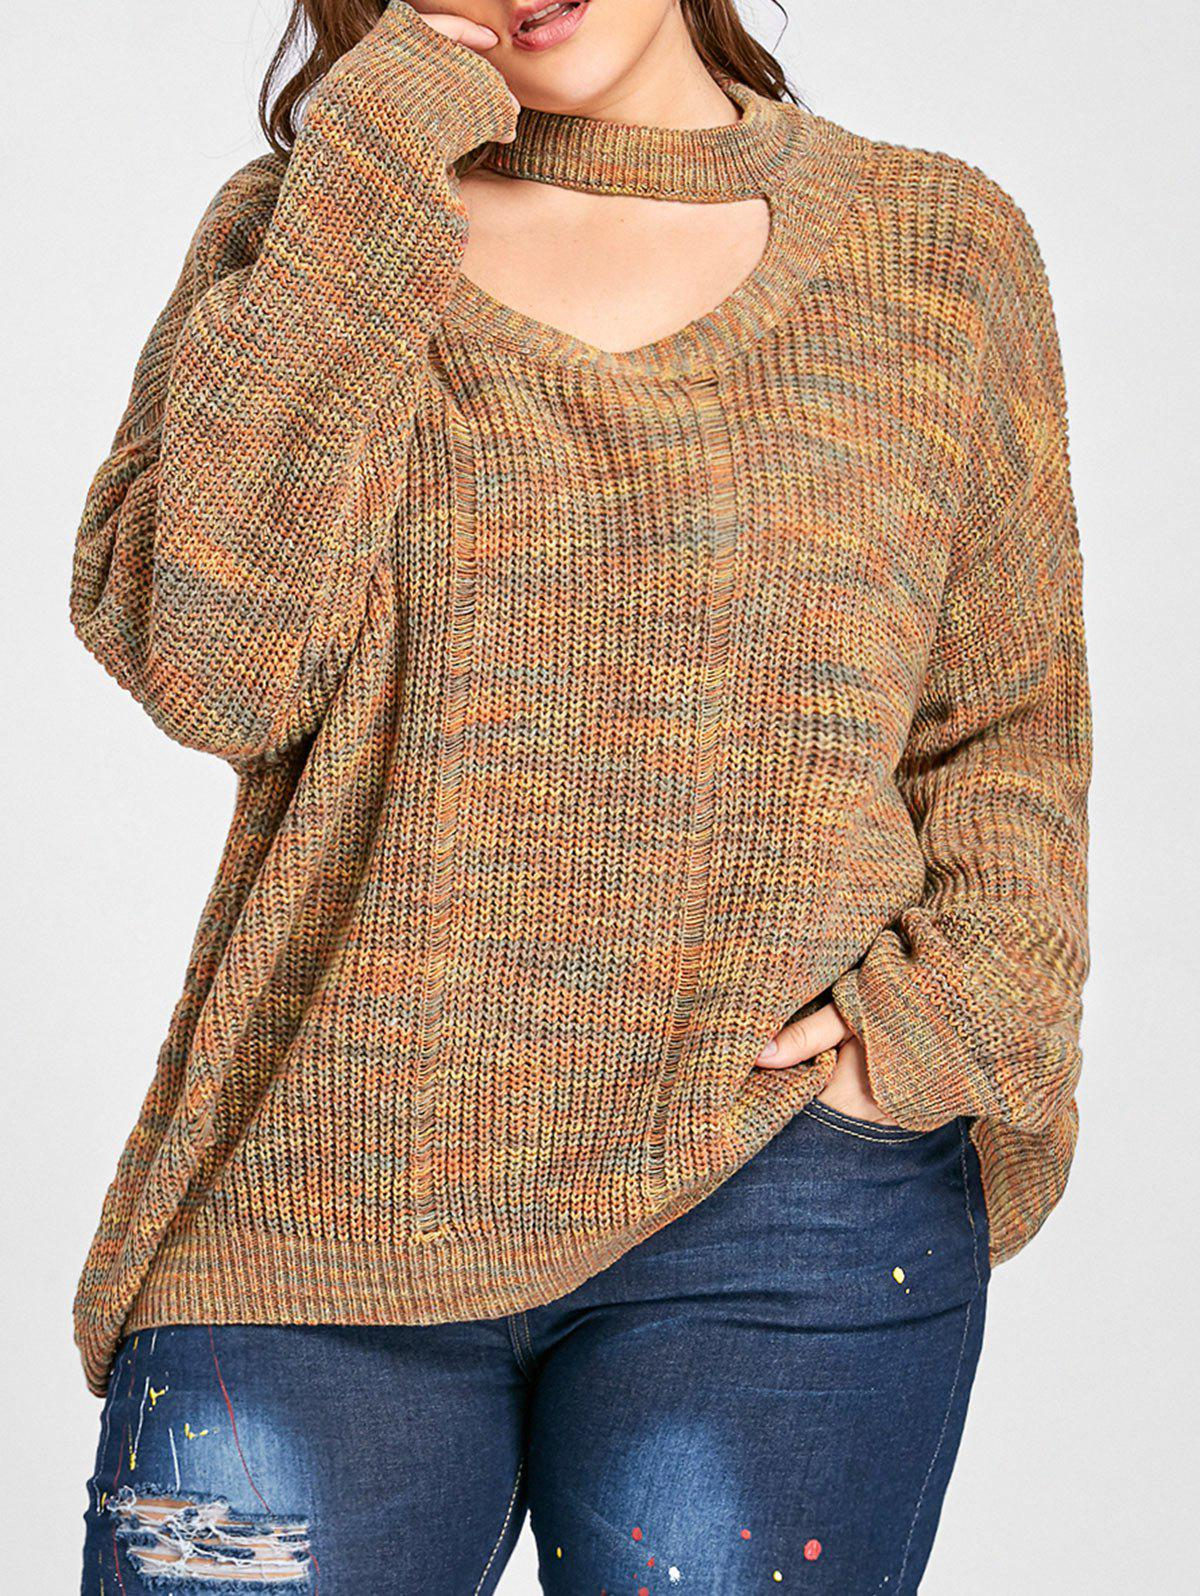 Plus Size Drop Shoulder Ripped Cut Out Neck SweaterWOMEN<br><br>Size: 2XL; Color: LIGHT COFFEE; Type: Pullovers; Material: Acrylic,Polyester; Sleeve Length: Full; Collar: High Collar; Style: Fashion; Season: Fall; Pattern Type: Others; Weight: 0.5200kg; Package Contents: 1 x Sweater;